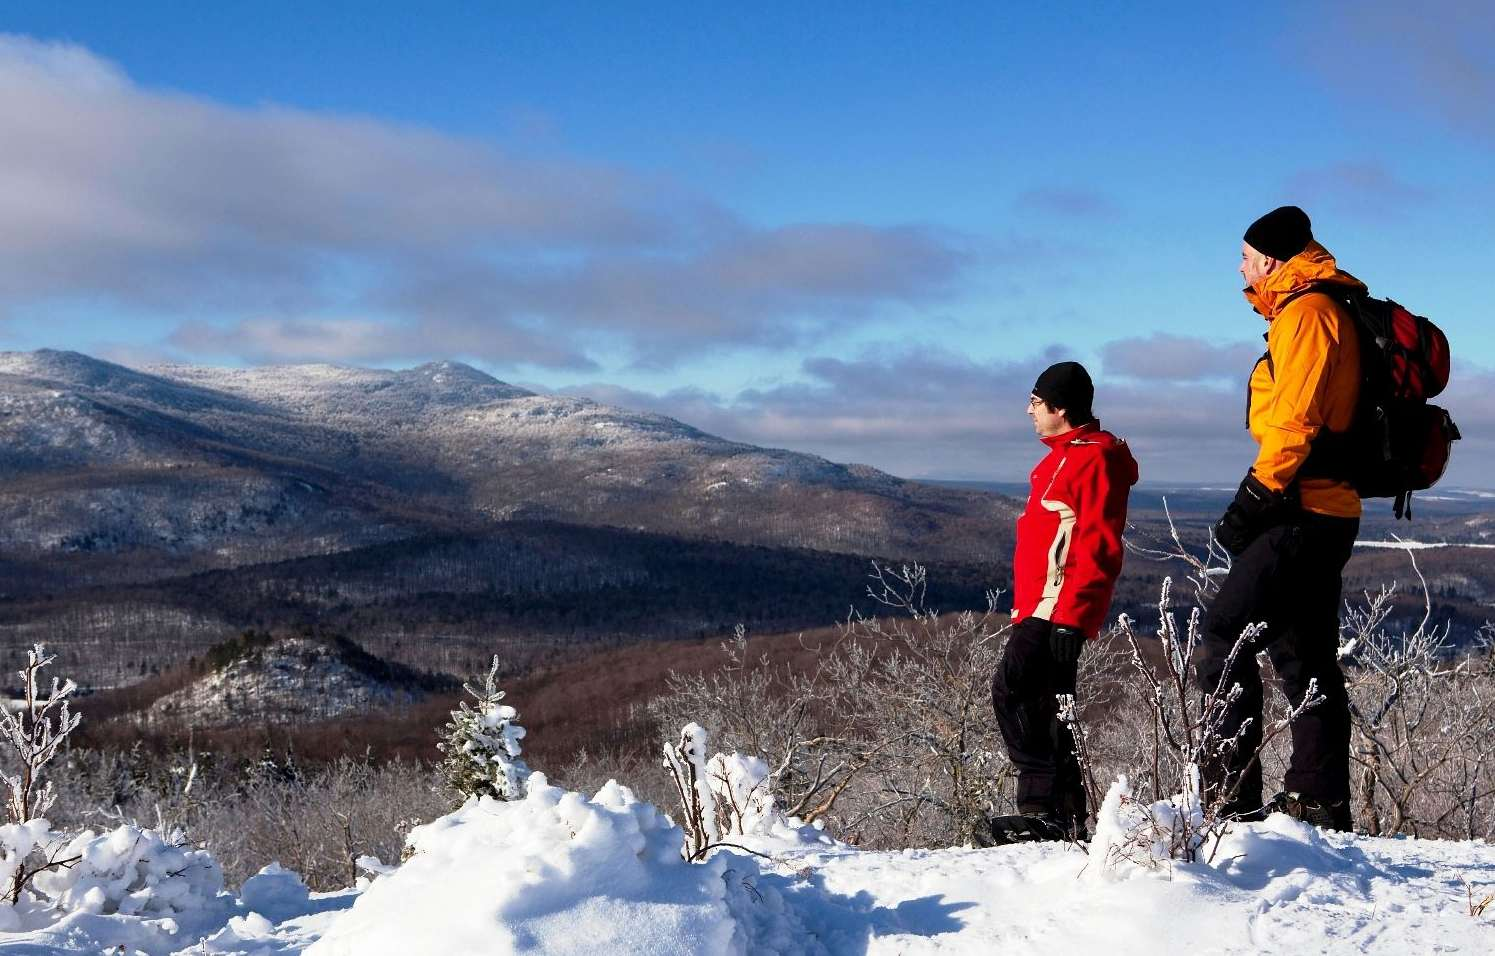 Top winter hikes near Montreal include Mont Orford